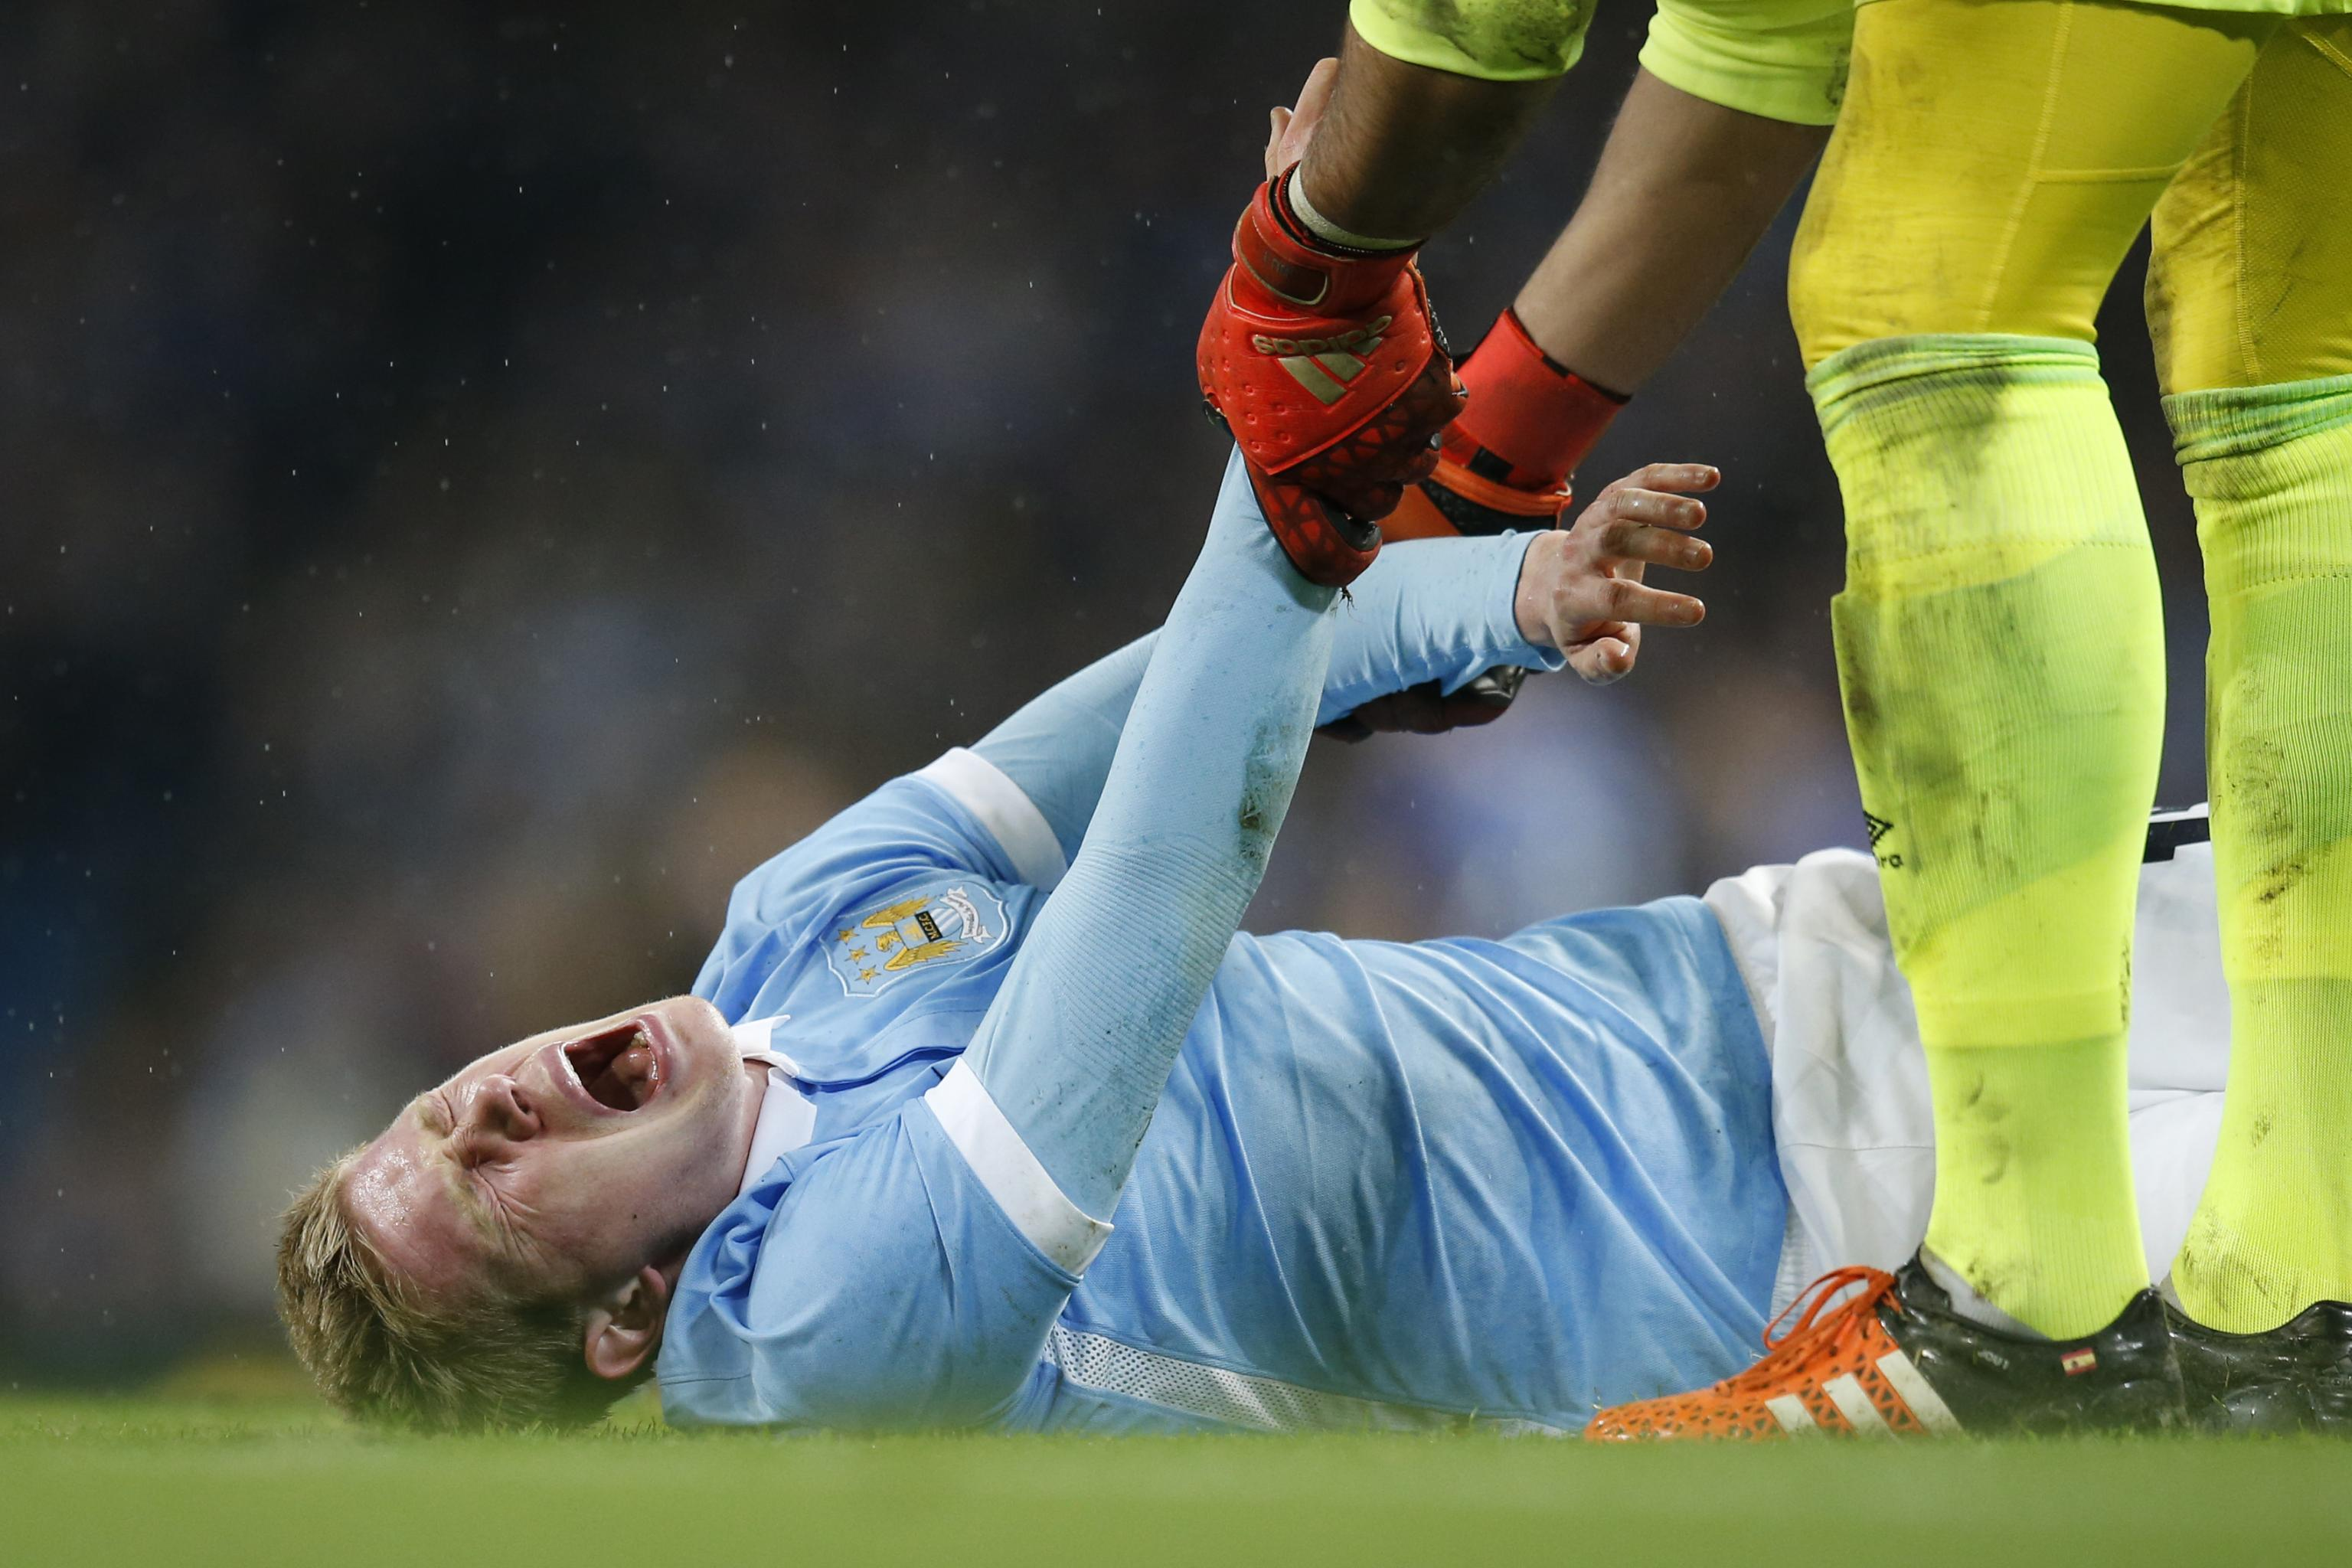 Kevin De Bruyne Injury: Updates on Manchester City Midfielder's Knee and  Return | Bleacher Report | Latest News, Videos and Highlights